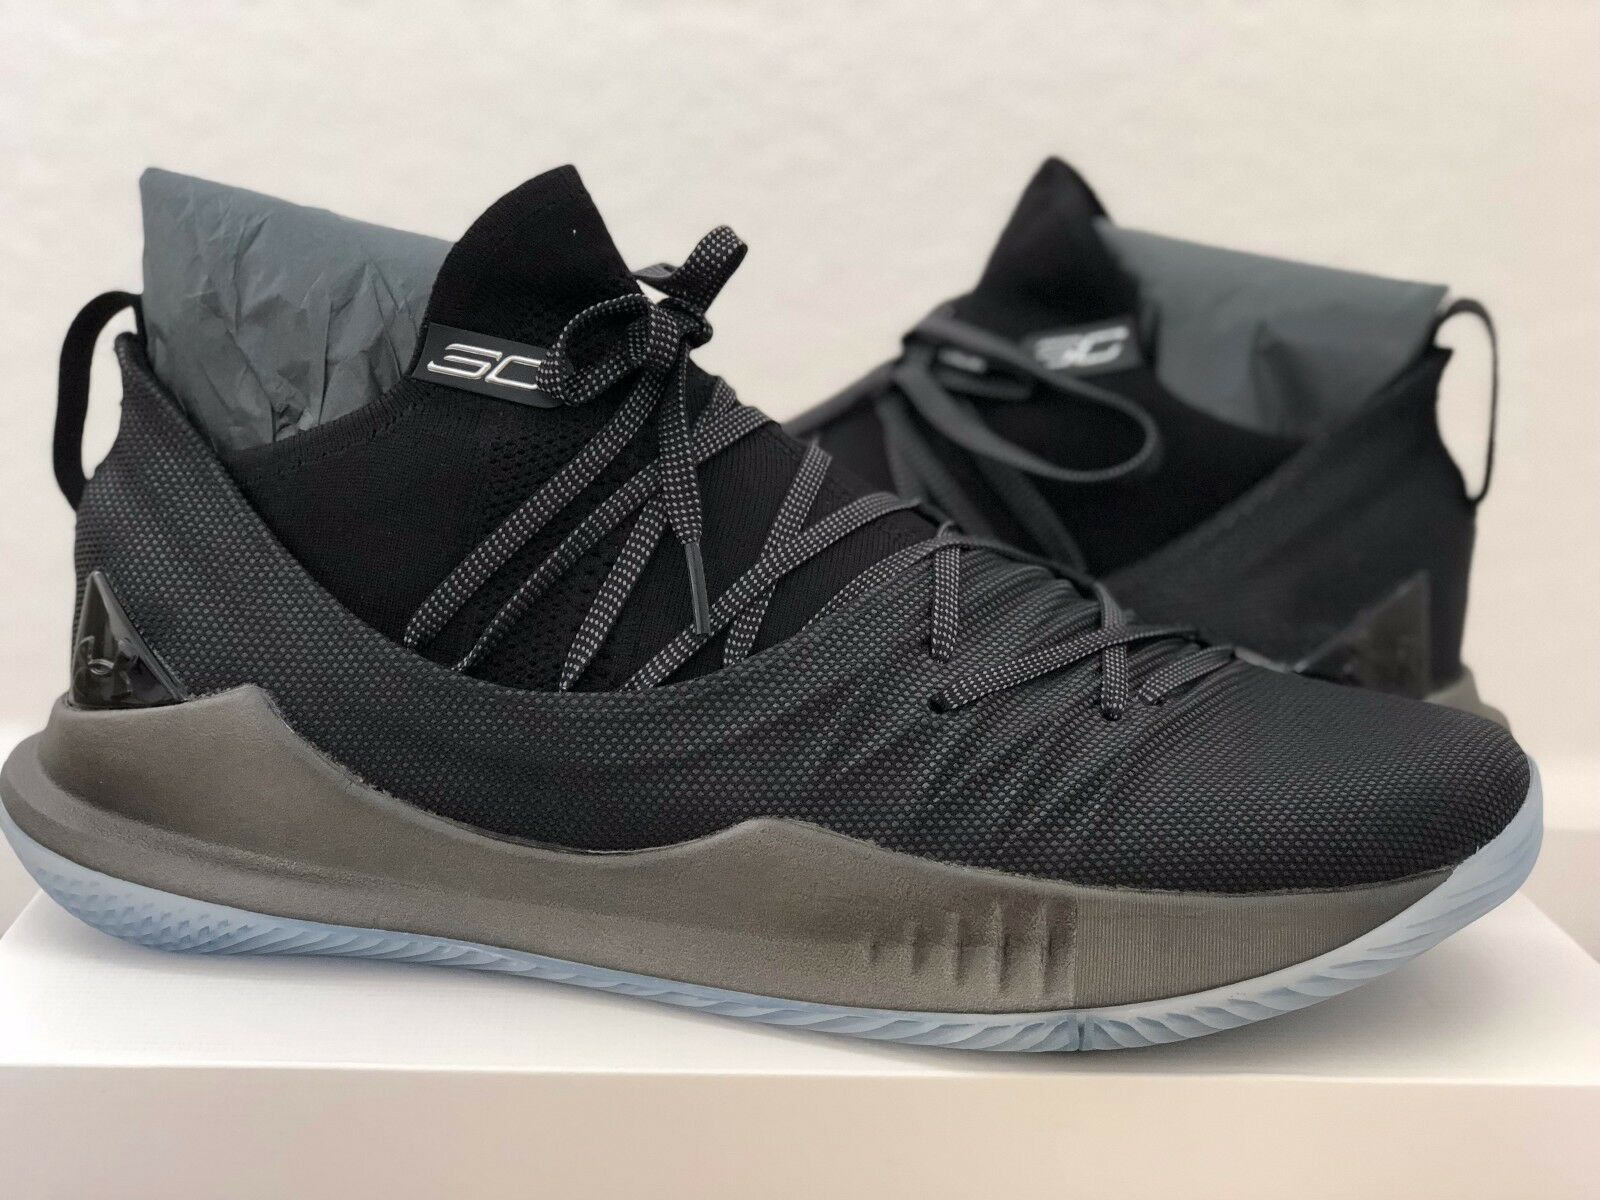 los angeles 2d180 0633c Under Armour UA Curry 5 Basketball Shoes Size 14 Pi Day 3.14